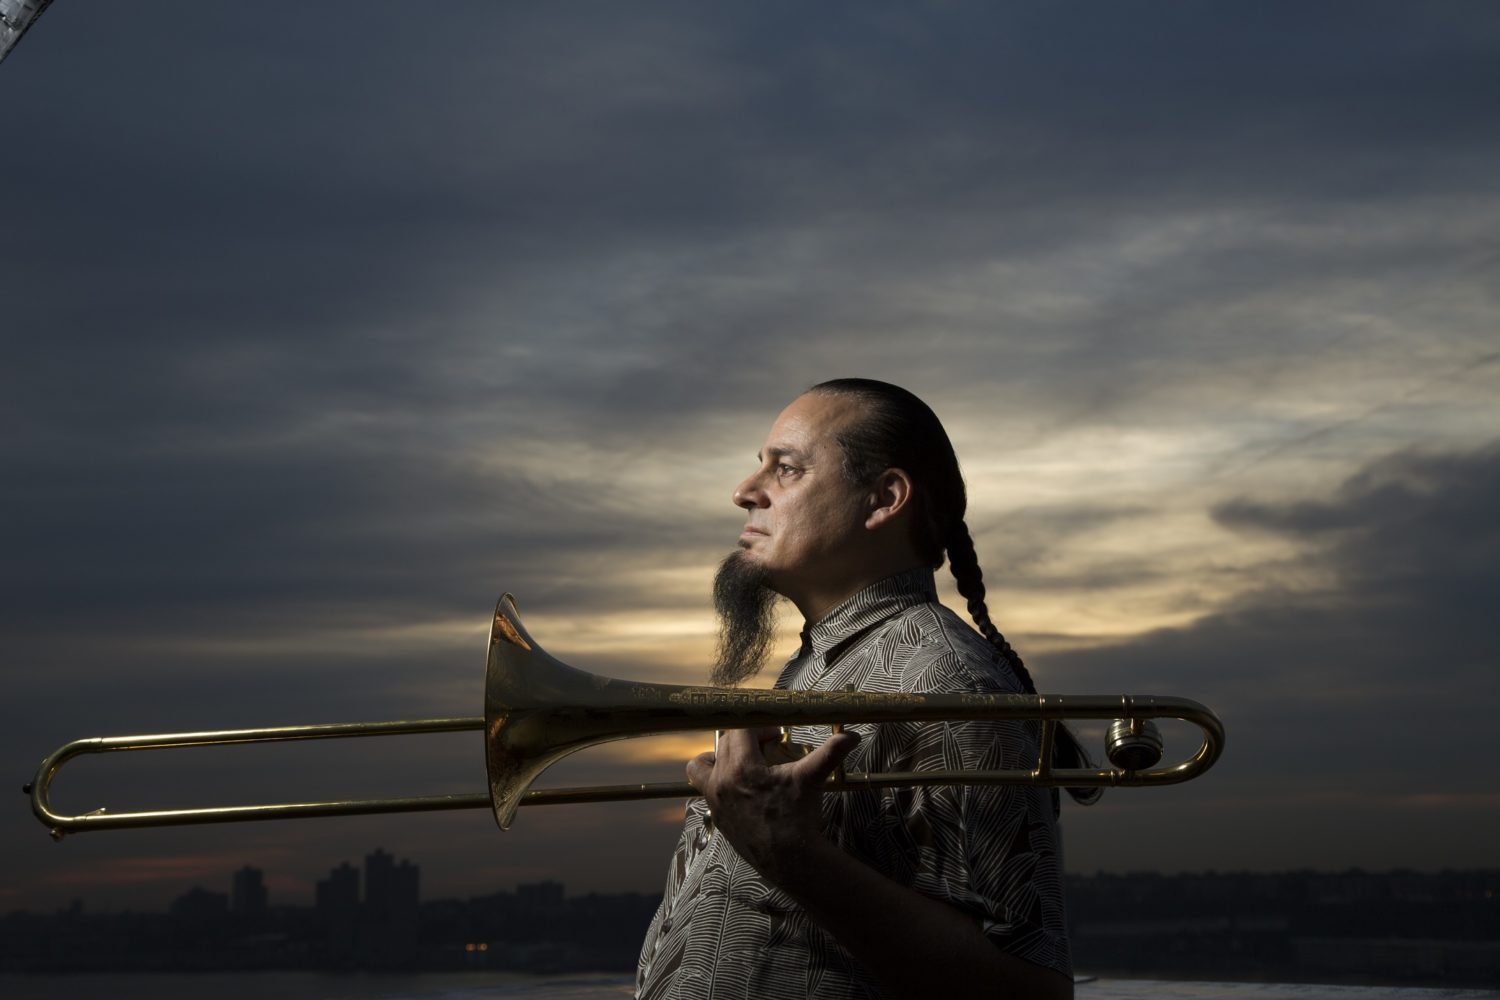 Big Band Jazz Concert Features Saturday Night Live's Steve Turre - Nevada Business Magazine